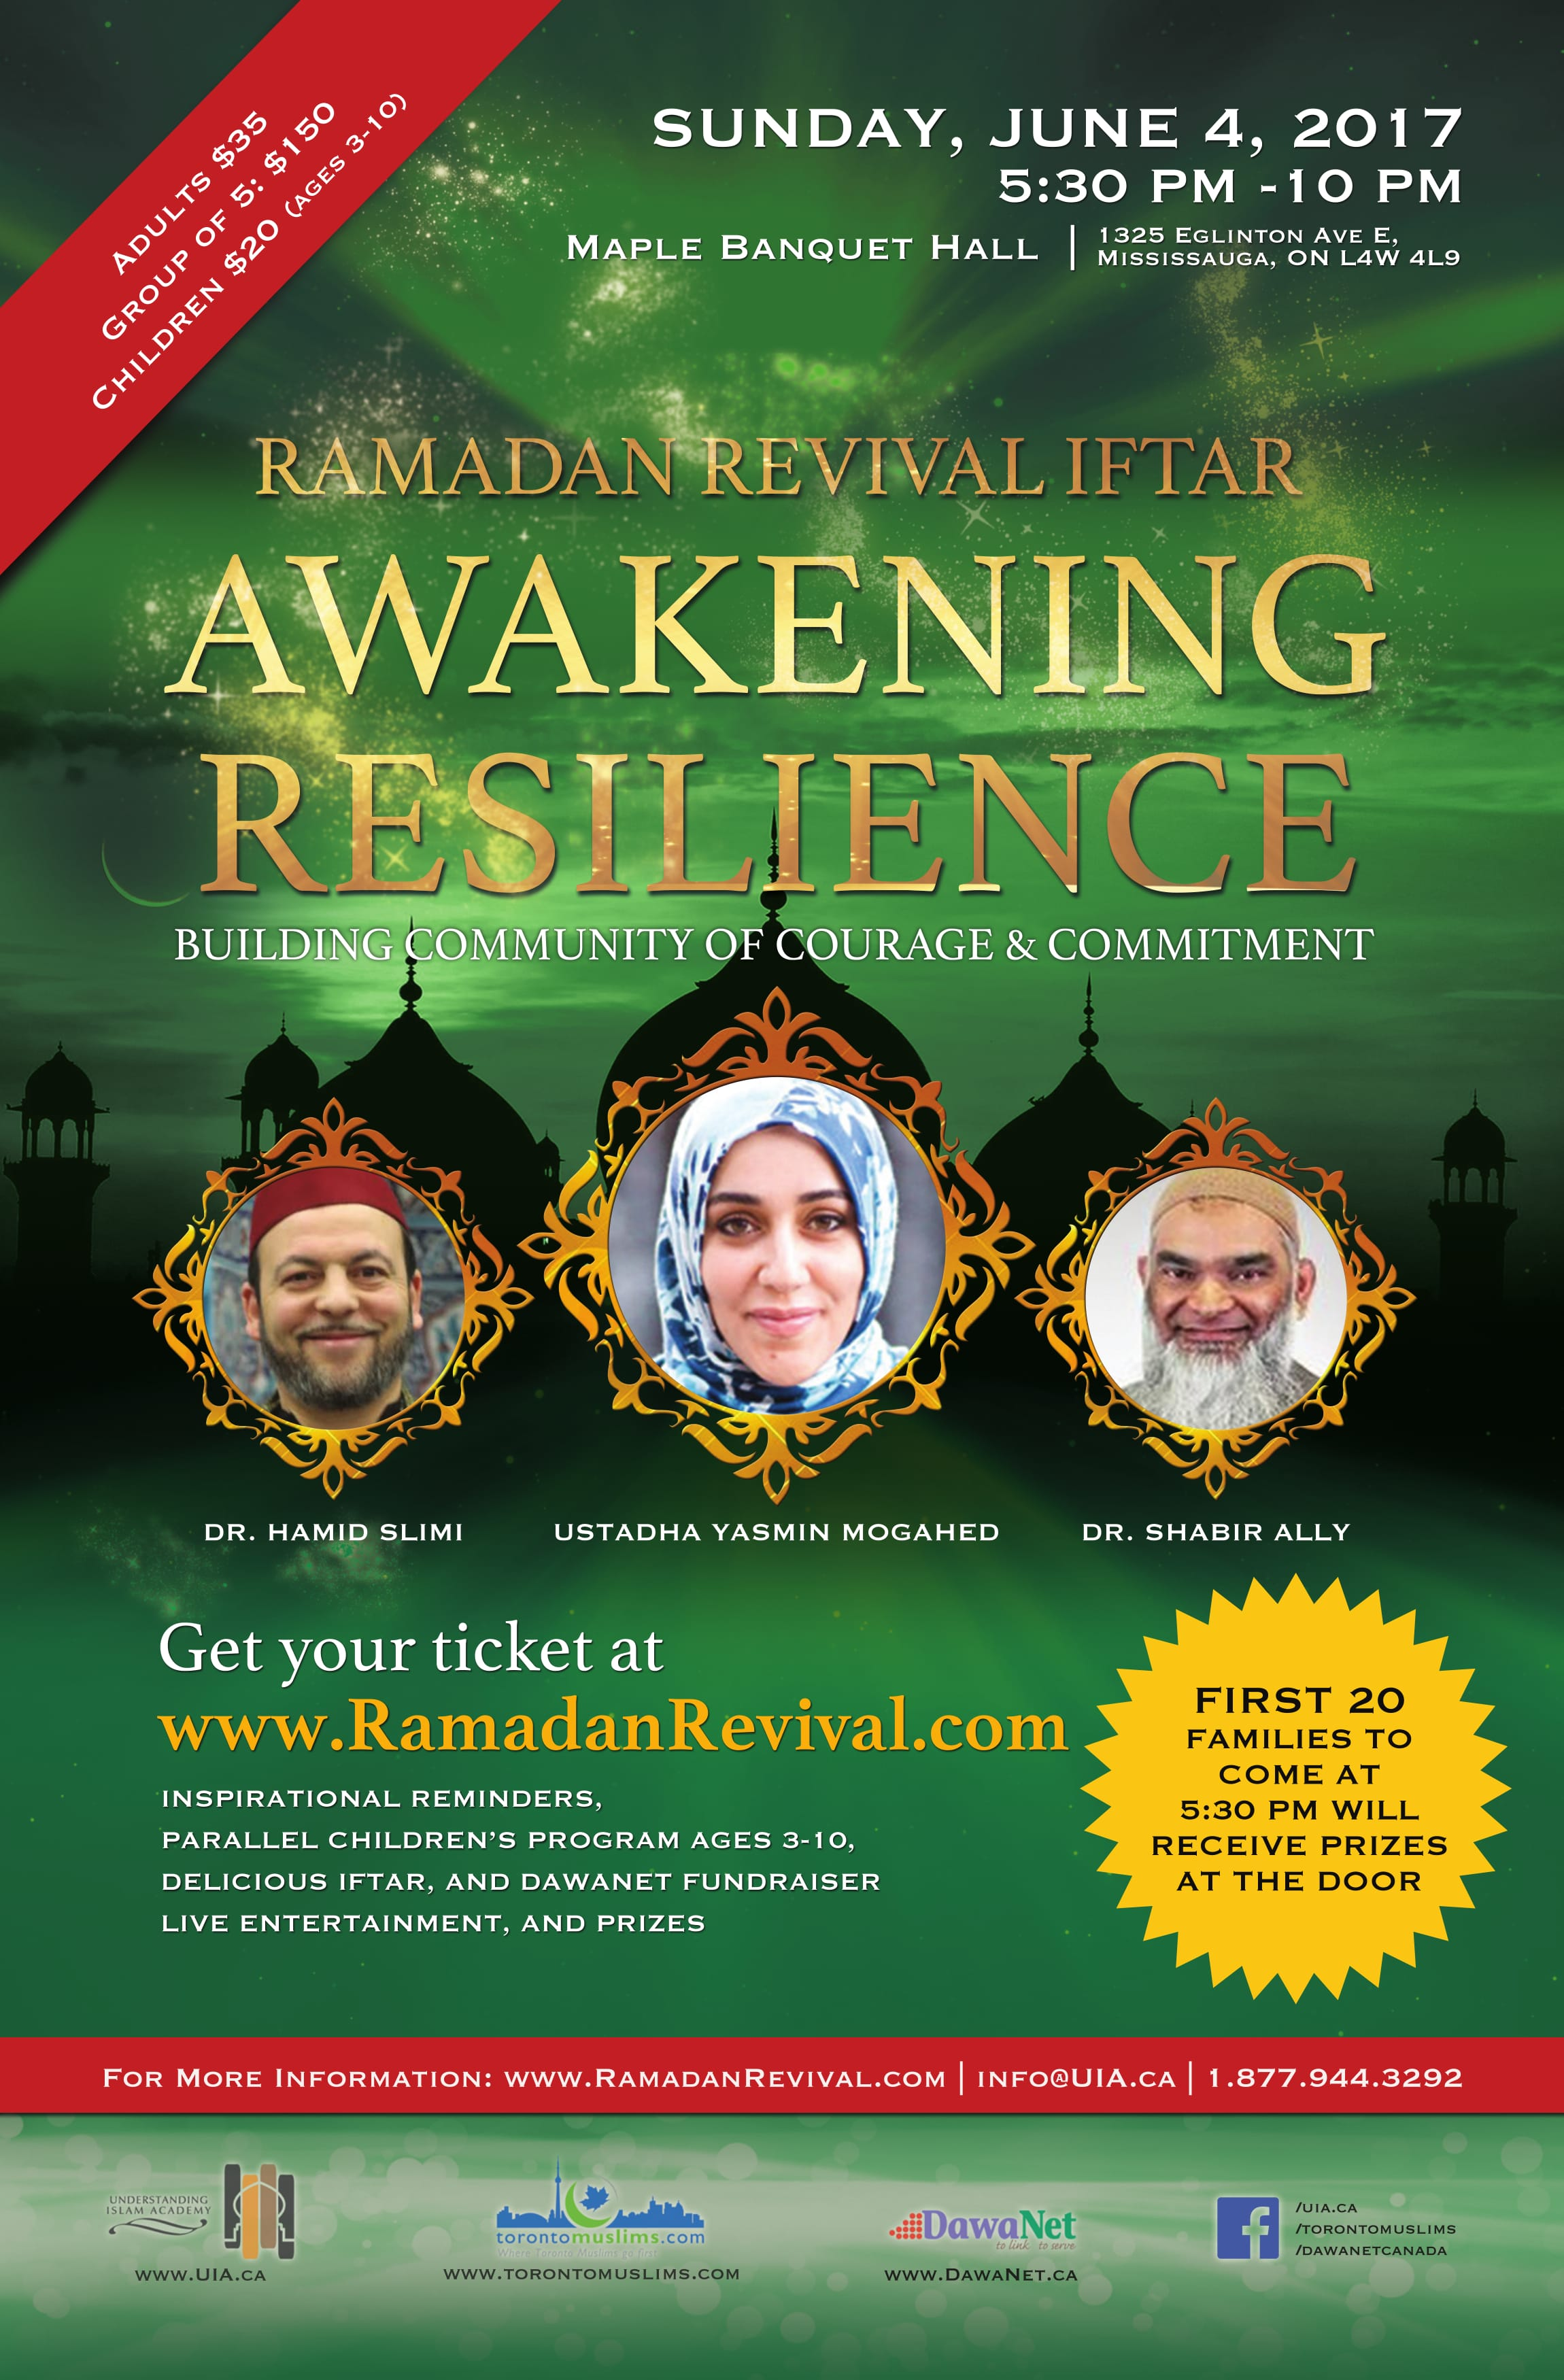 Ramadan Revival 2017 flyer